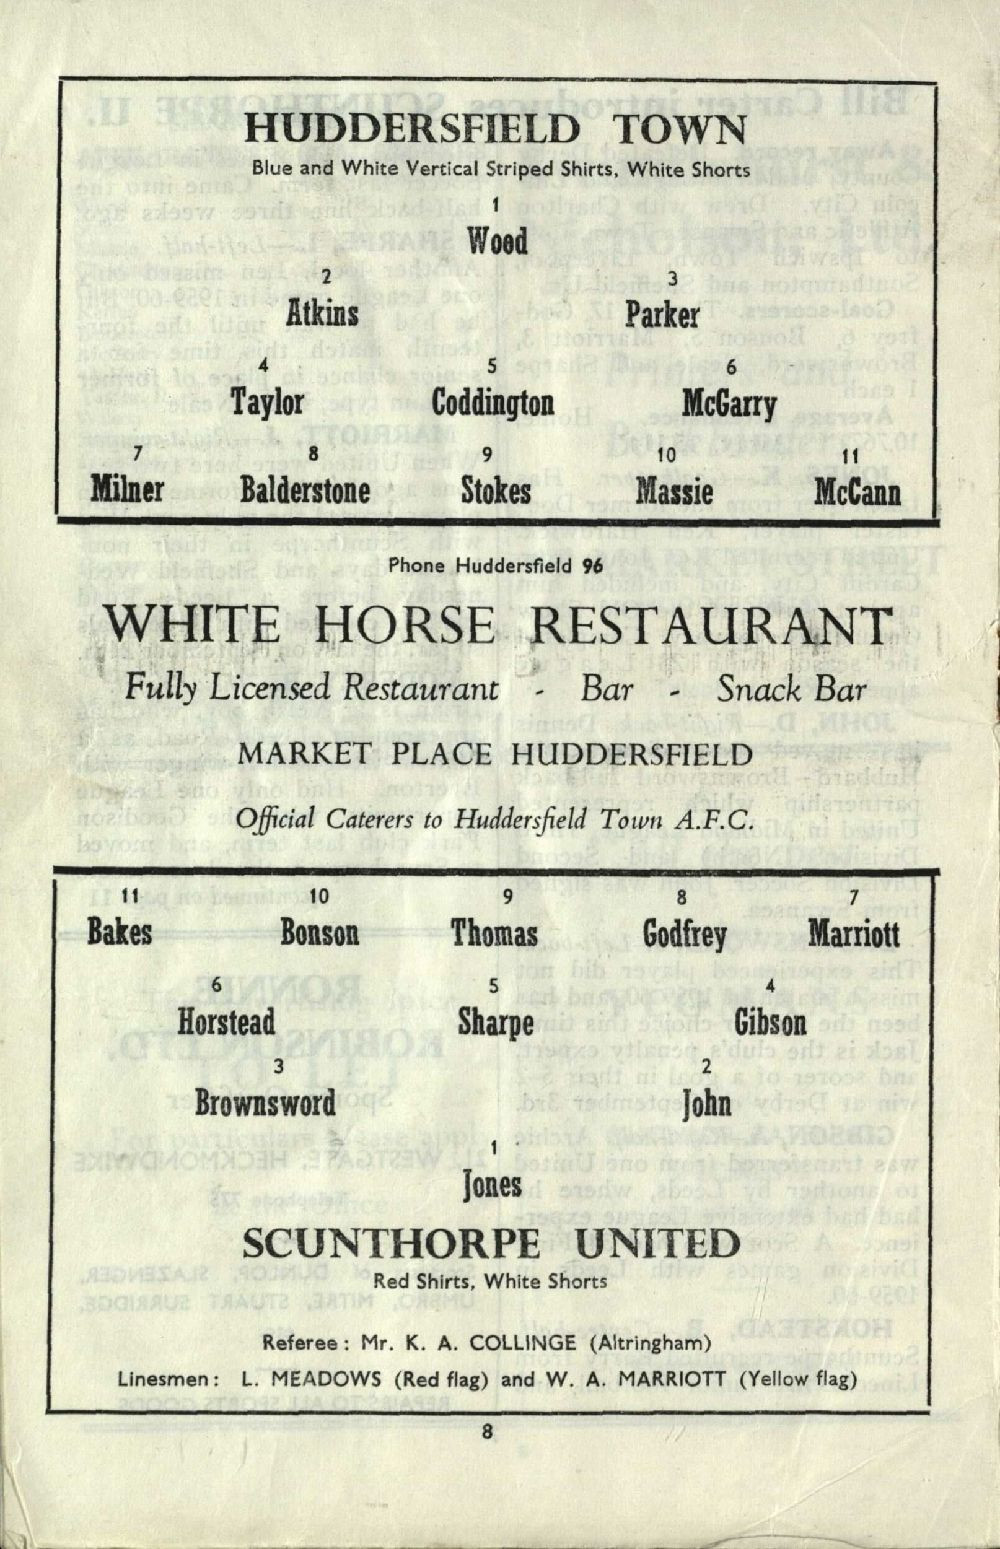 Team sheet from a Huddersfield Town matchday programme (Saturday, 19th November, 1960 v Scunthorpe United). Copyright resides with Huddersfield Town. Image reproduced for the Huddersfield Town Heritage Project.